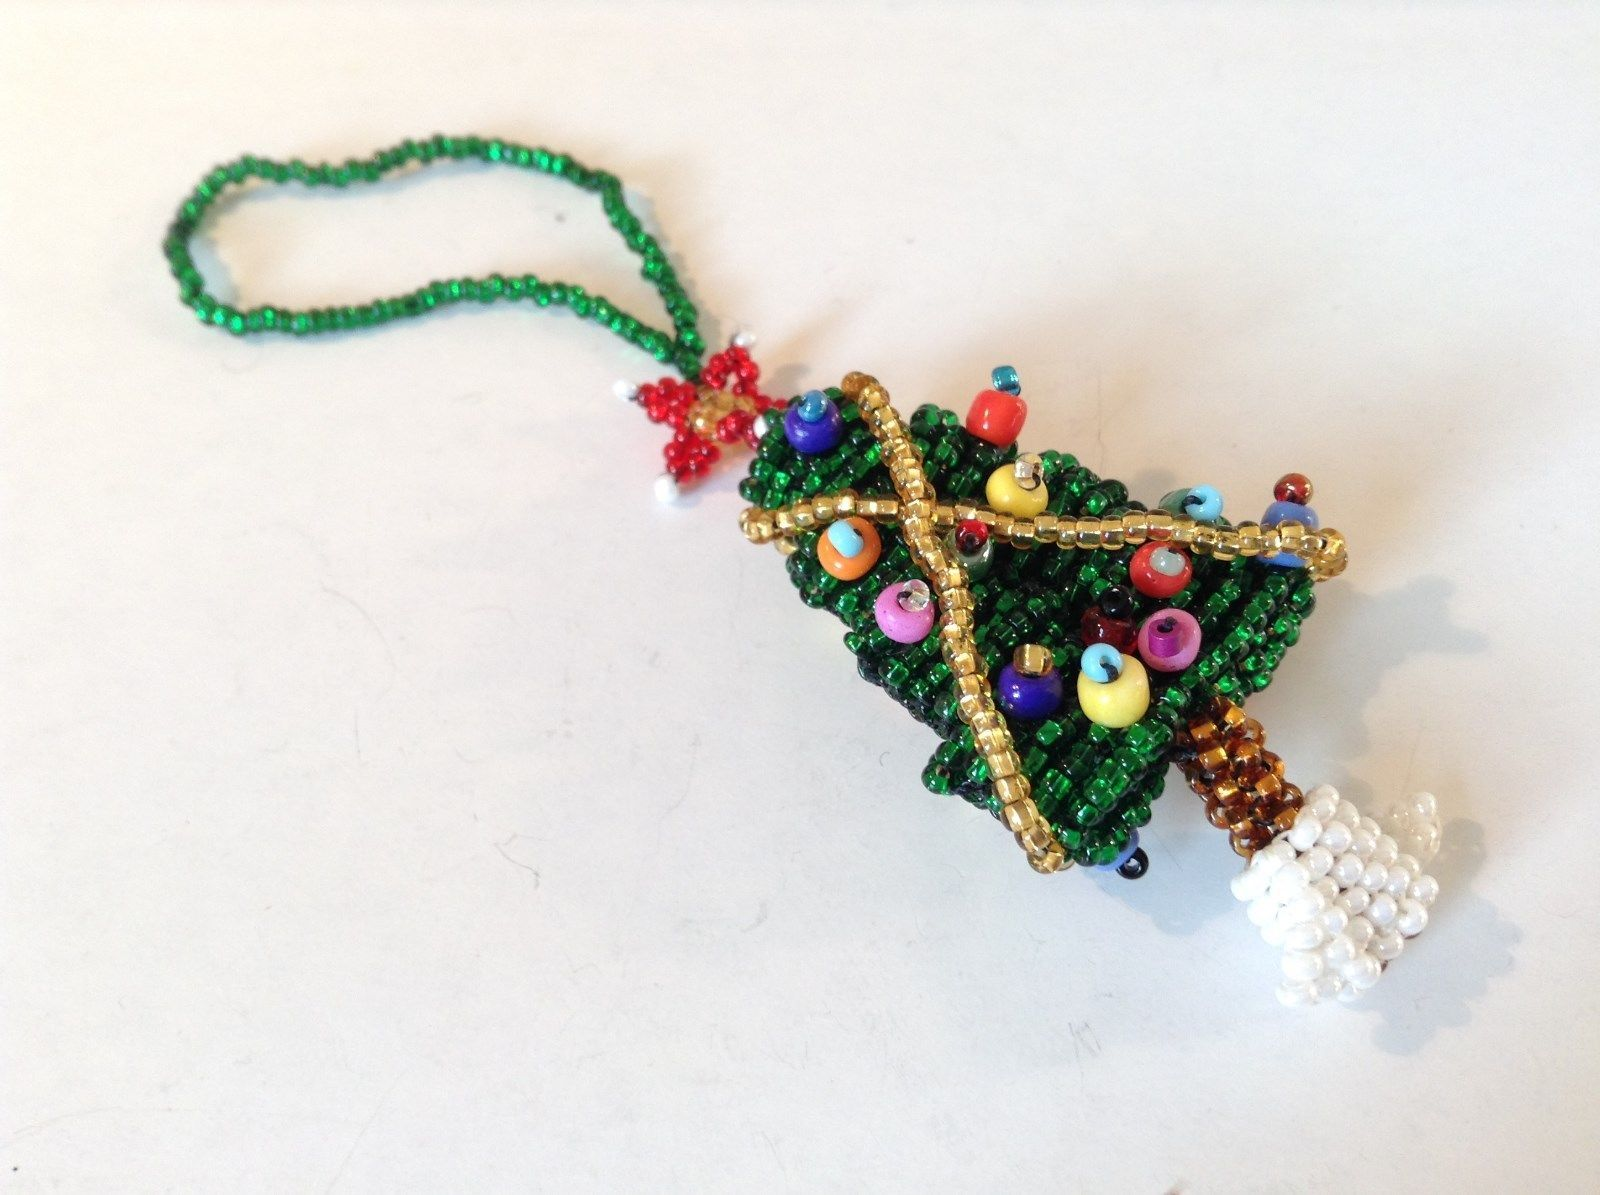 Green Beaded Handmade Tree Shaped Christmas Tree Ornament with Star